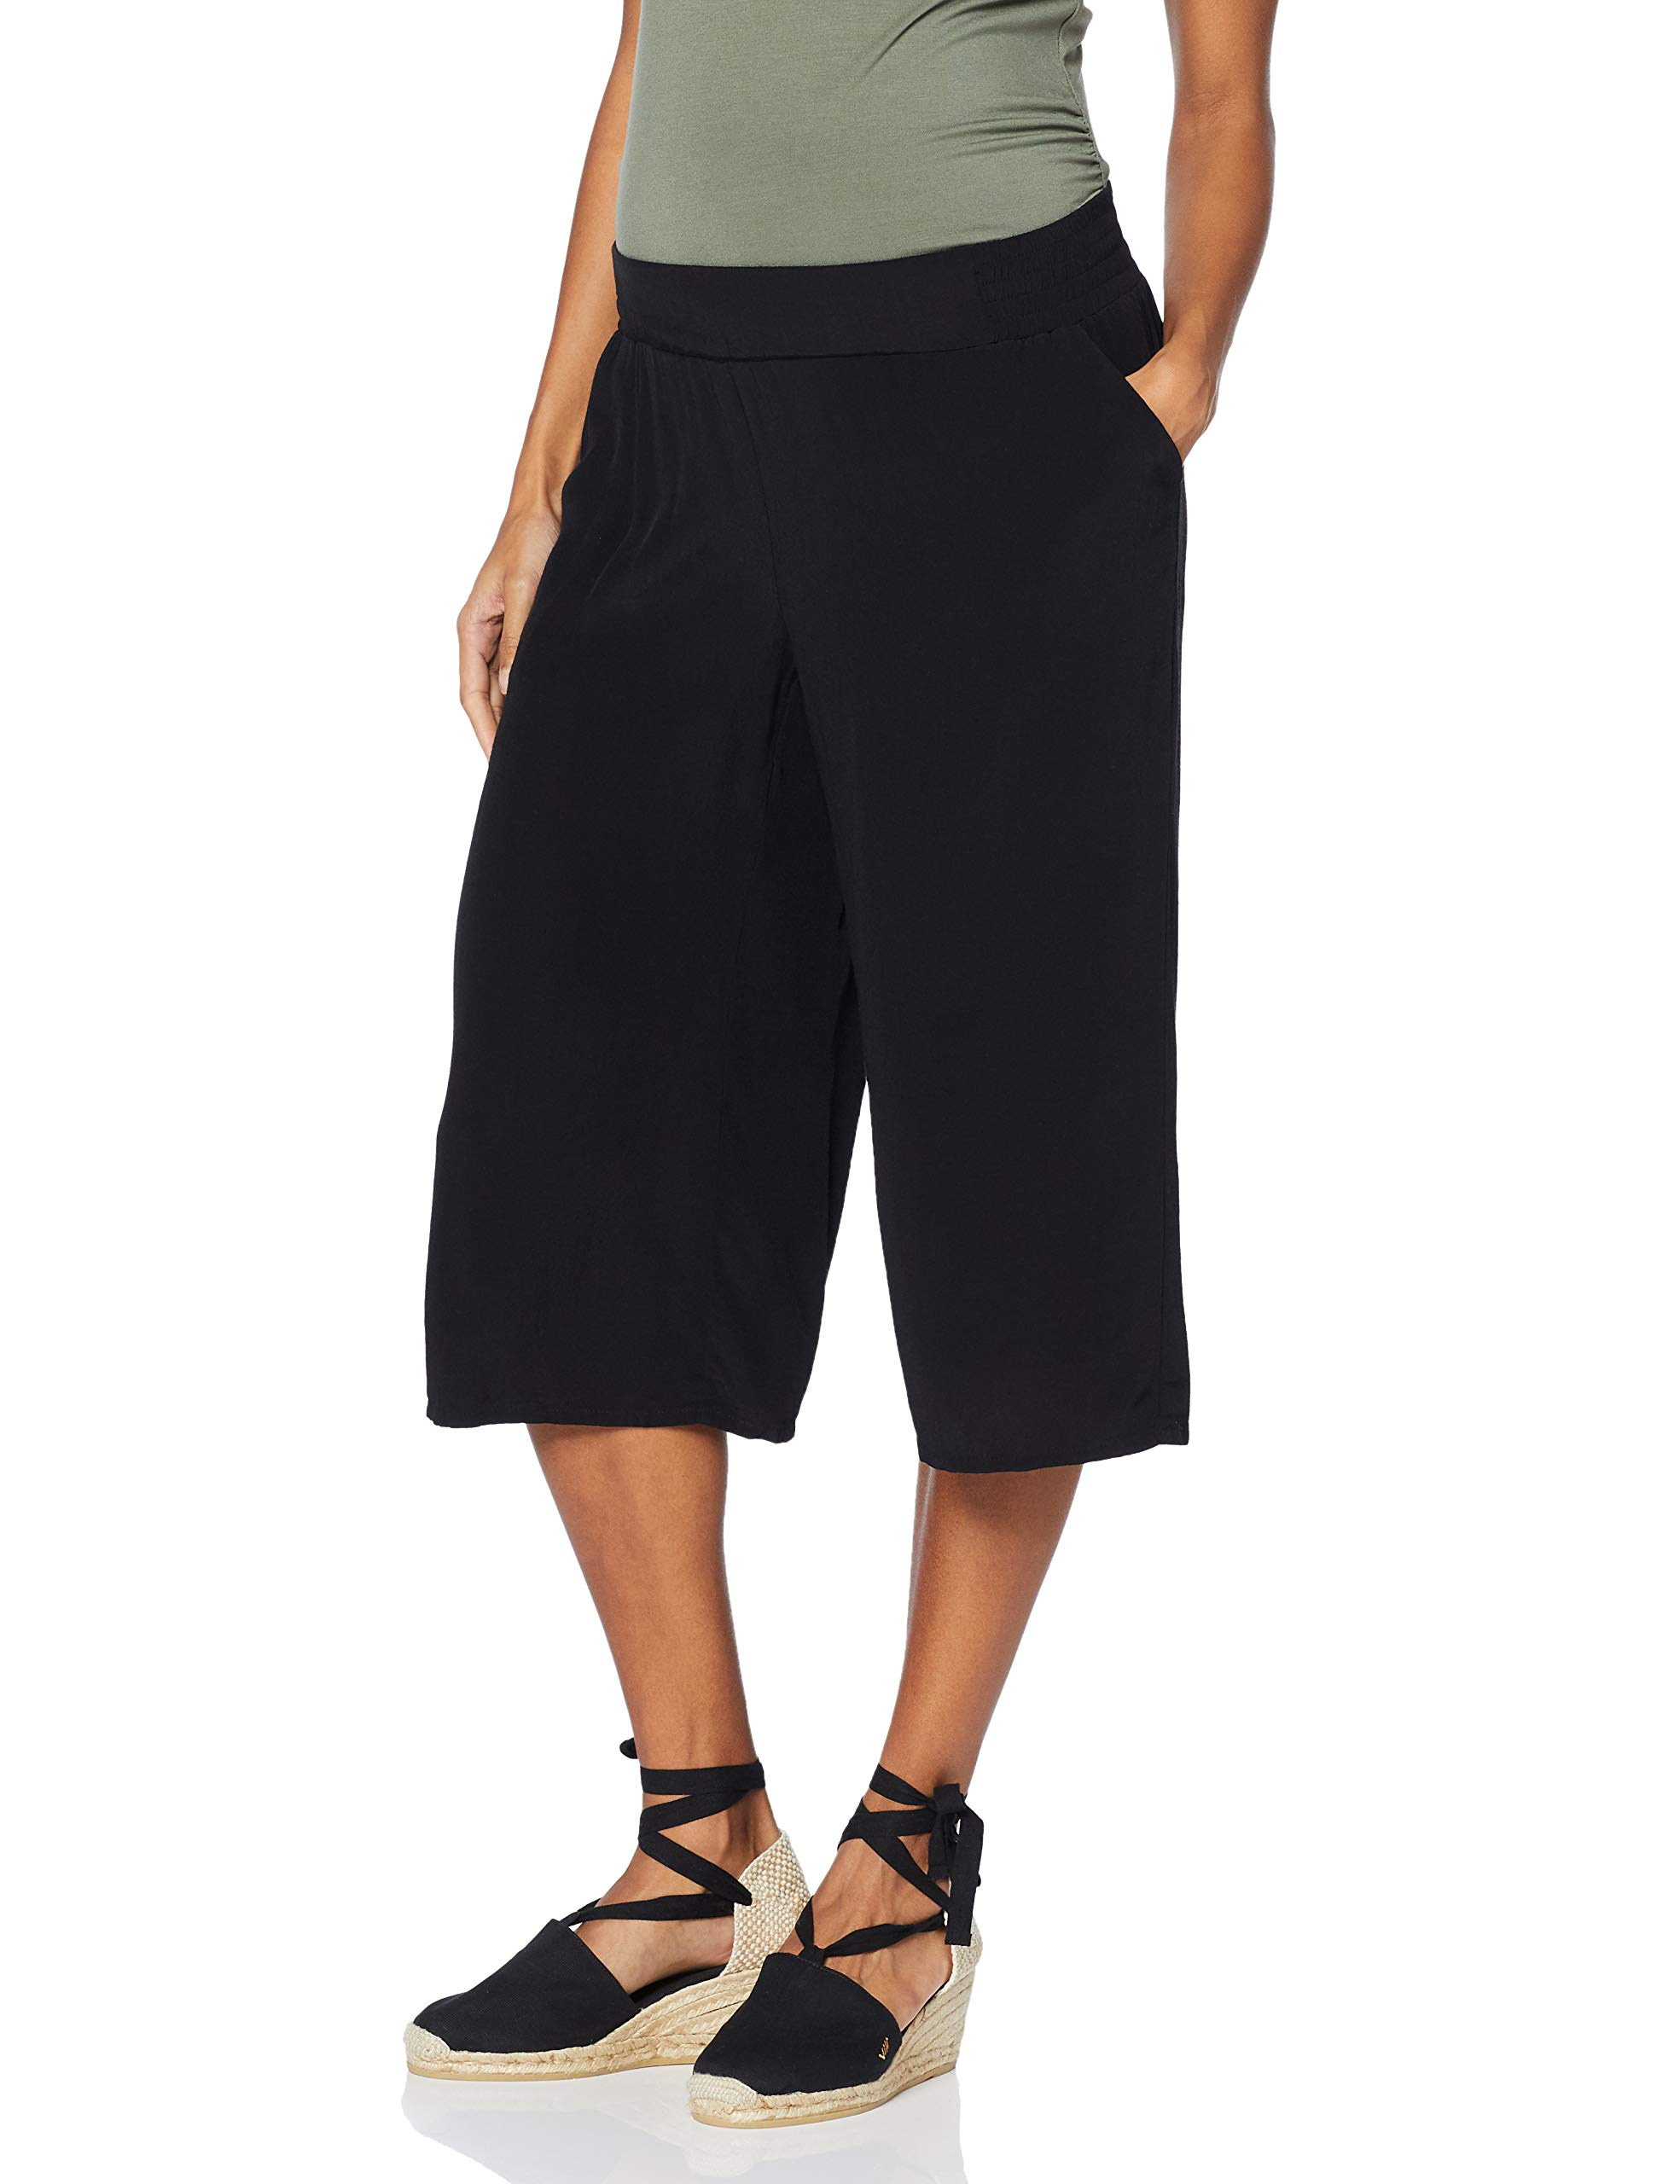 Esprit Coulotte 00142taille Pantalons Utb Maternity Pants maternitéNoirblack Fabricant40Femme 6gbfyY7v